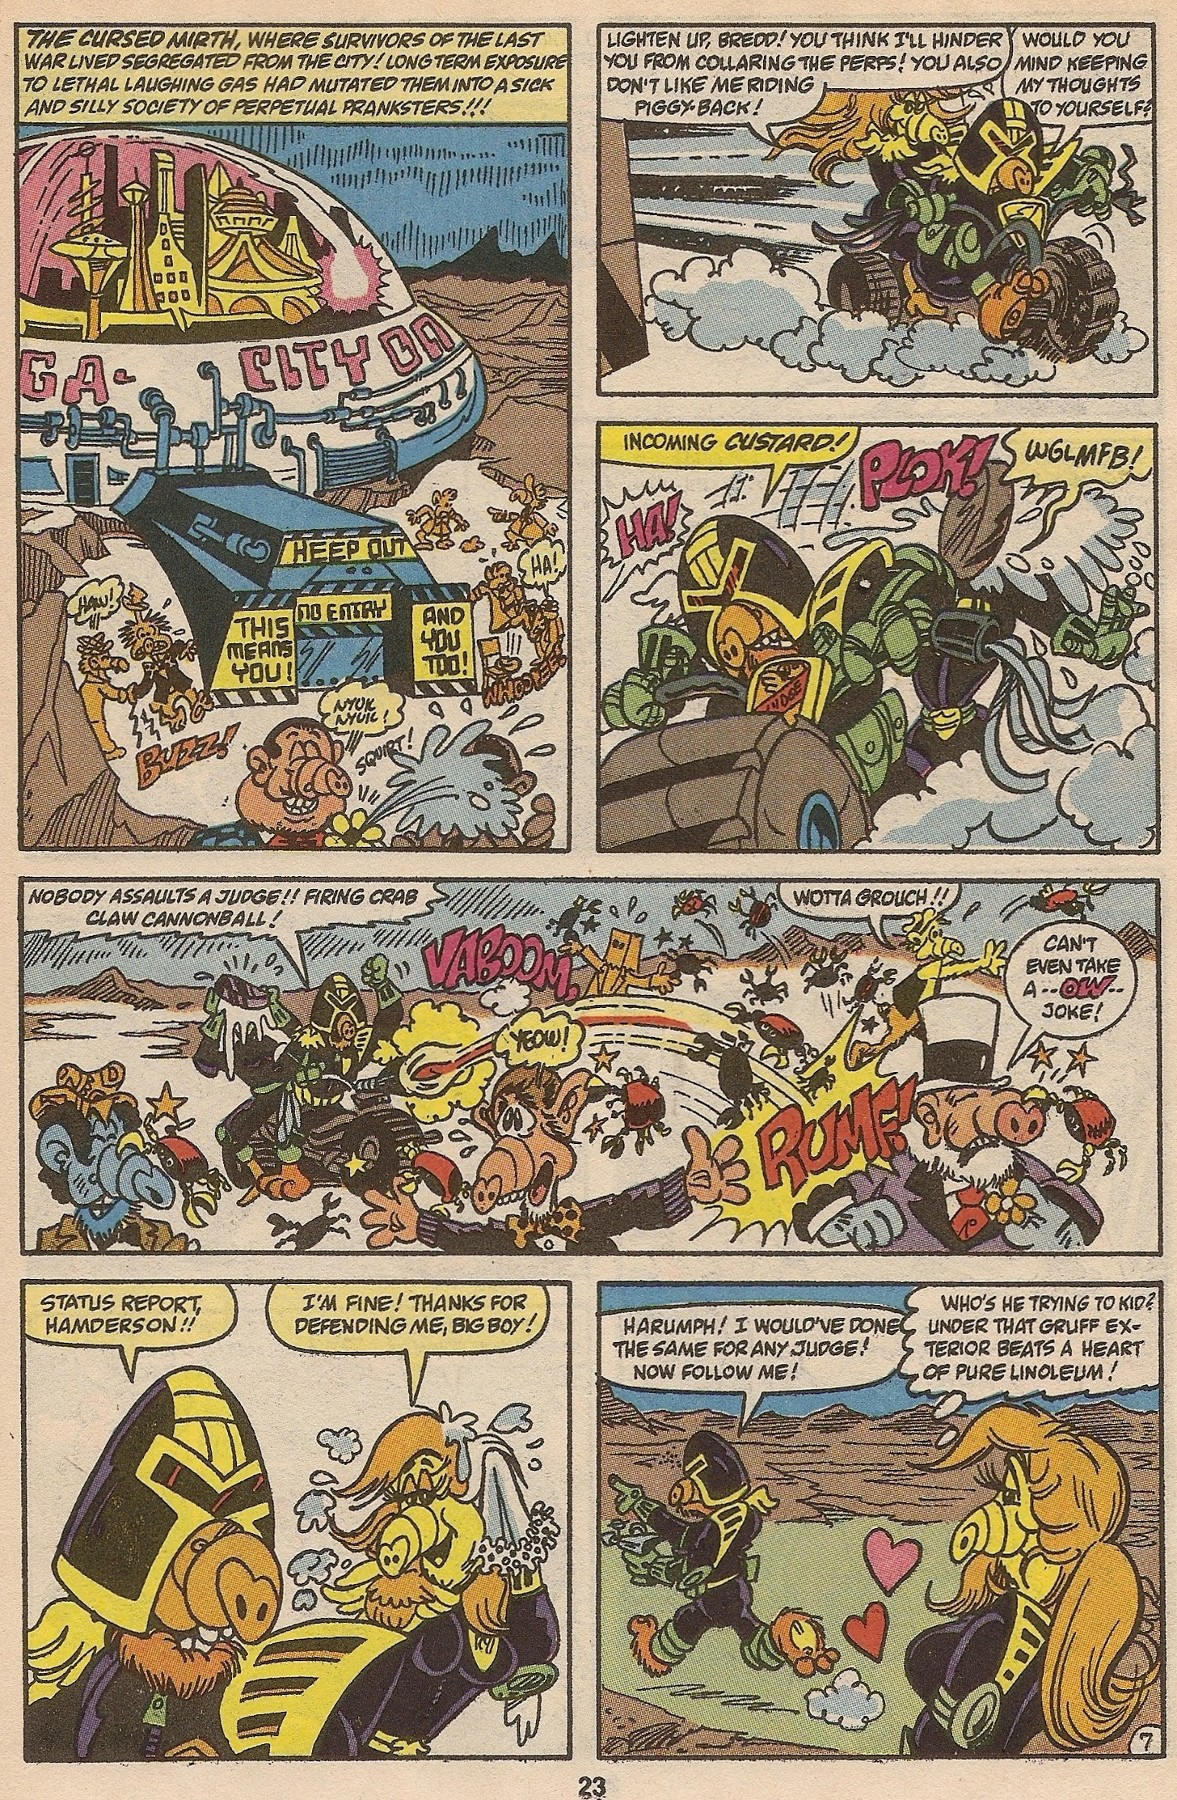 Read online ALF comic -  Issue #35 - 24